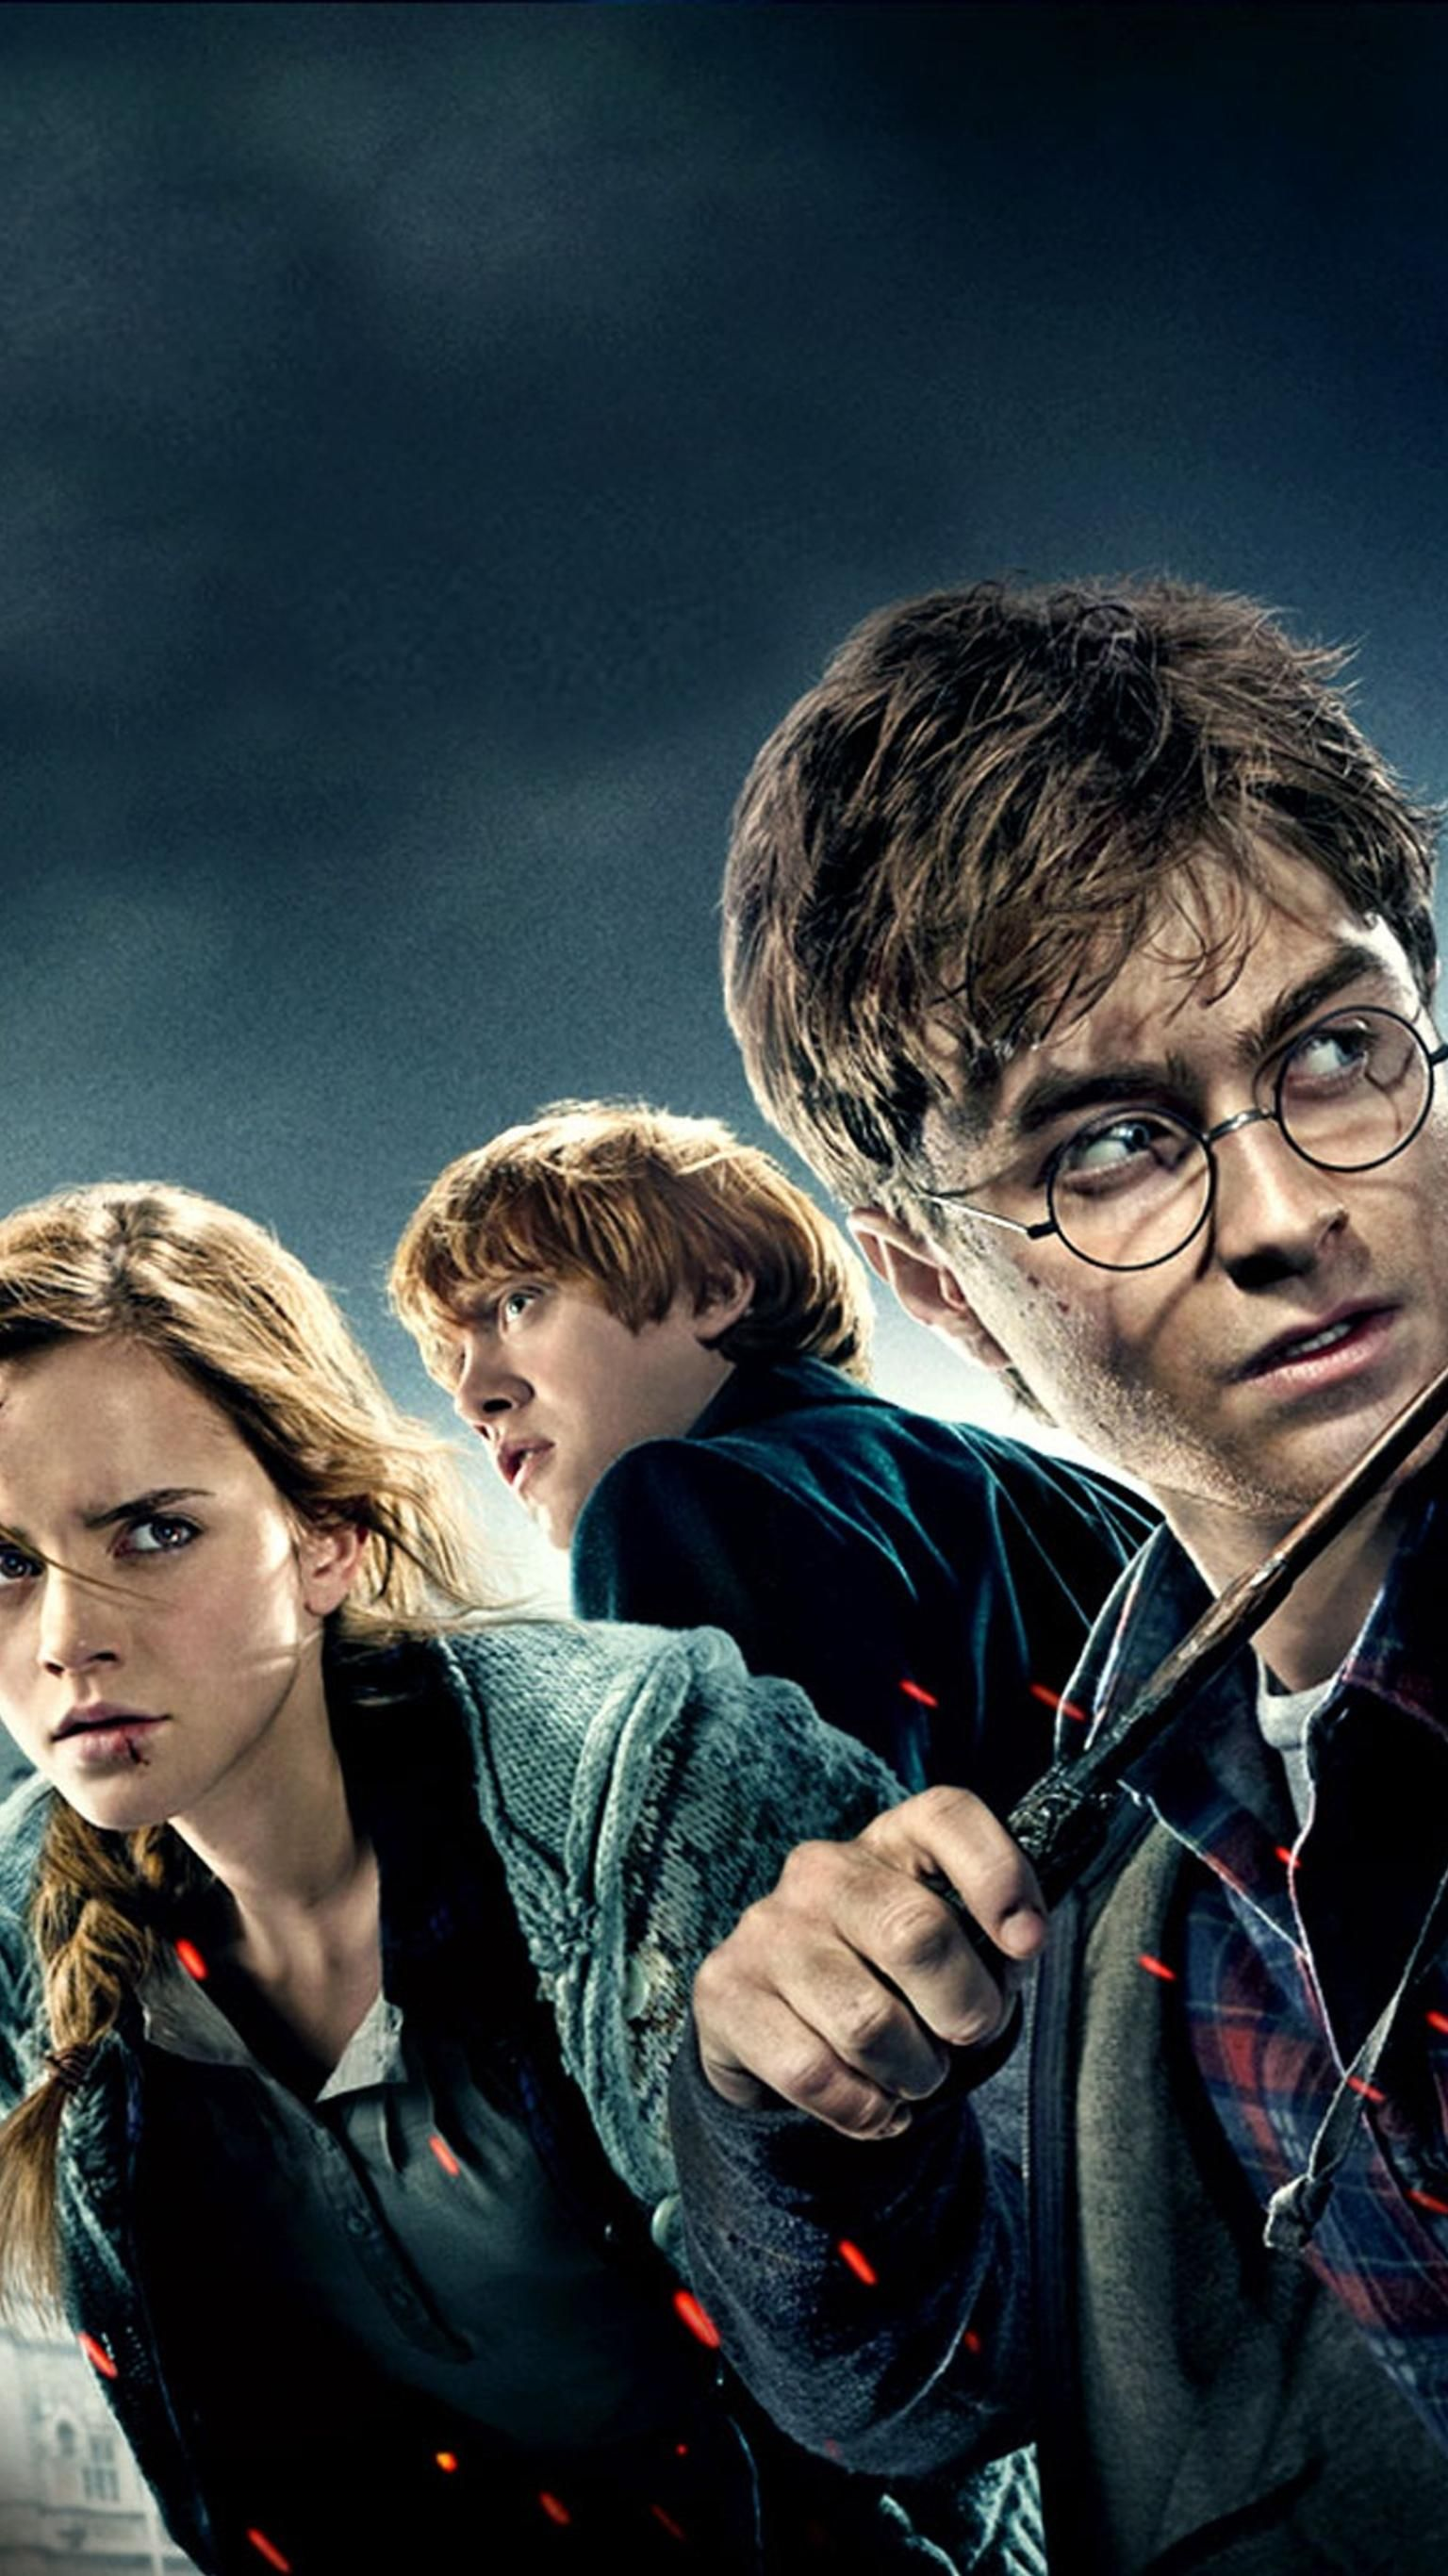 Harry Potter and the Deathly Hallows: Part 1 (2010) Phone Wallpaper | Moviemania